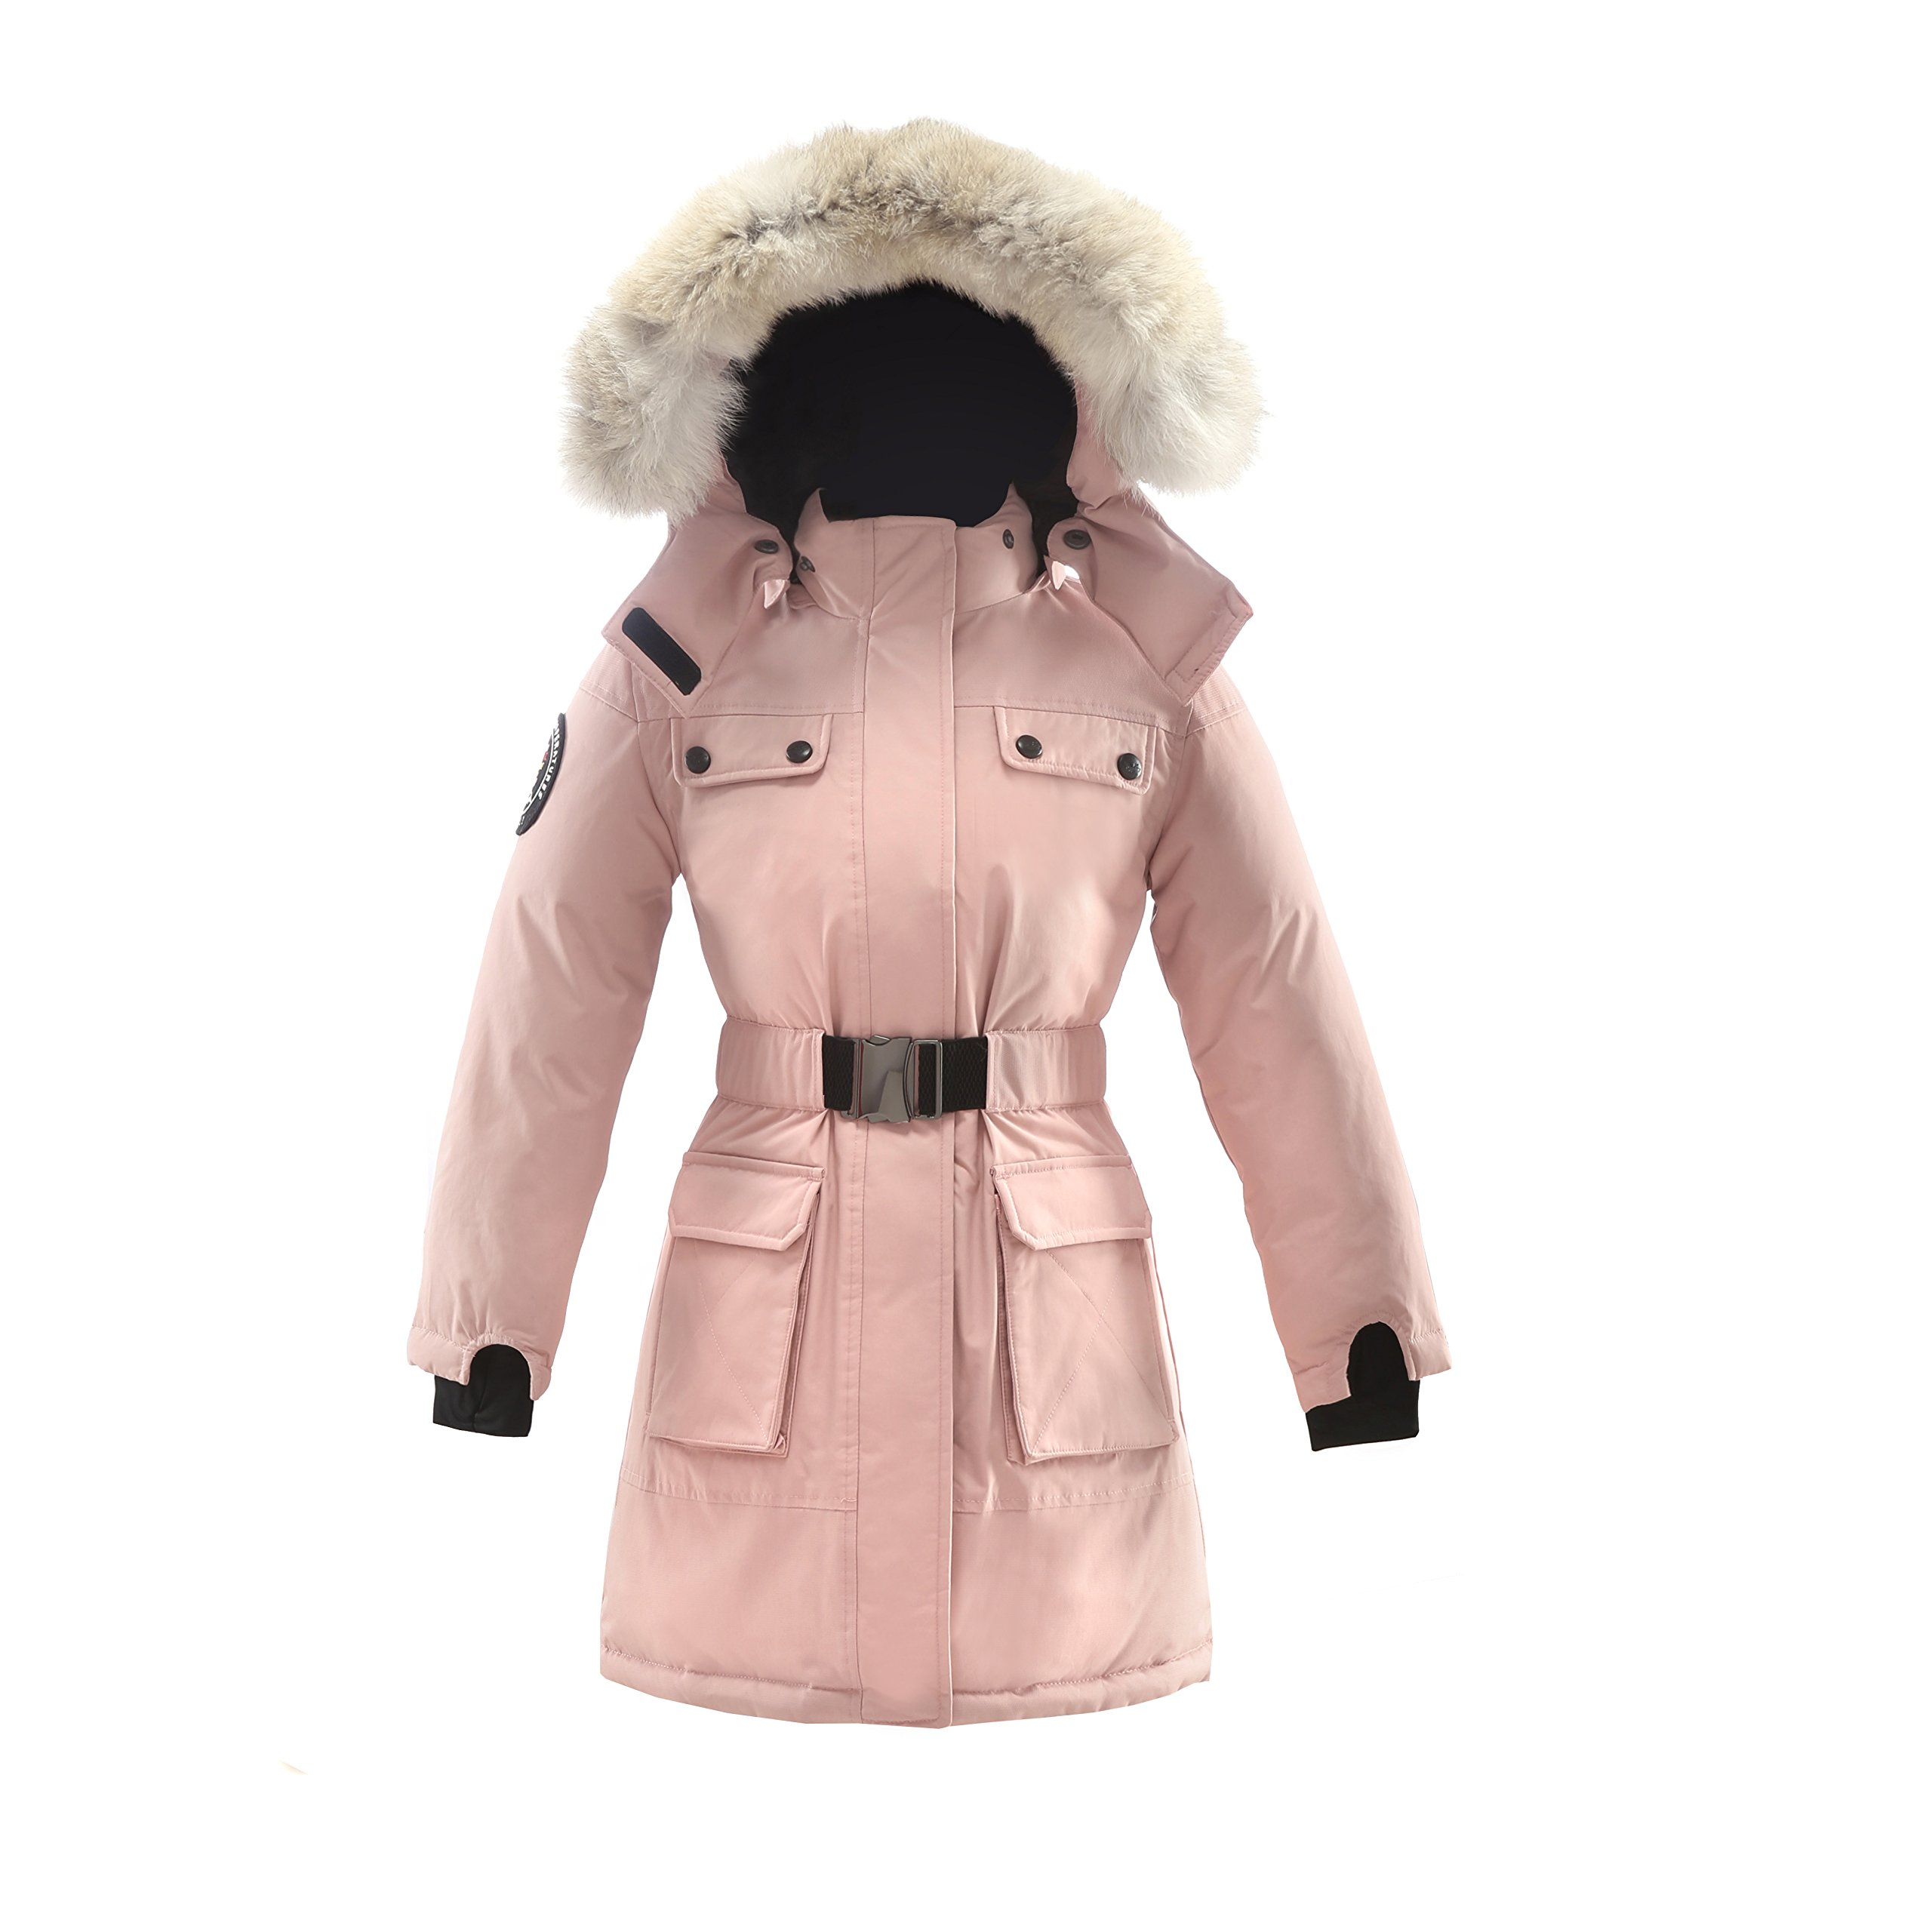 Triple F.A.T. Goose Arkona Girls Down Jacket Parka with Real Coyote Fur (12, Pink) by Triple F.A.T. Goose